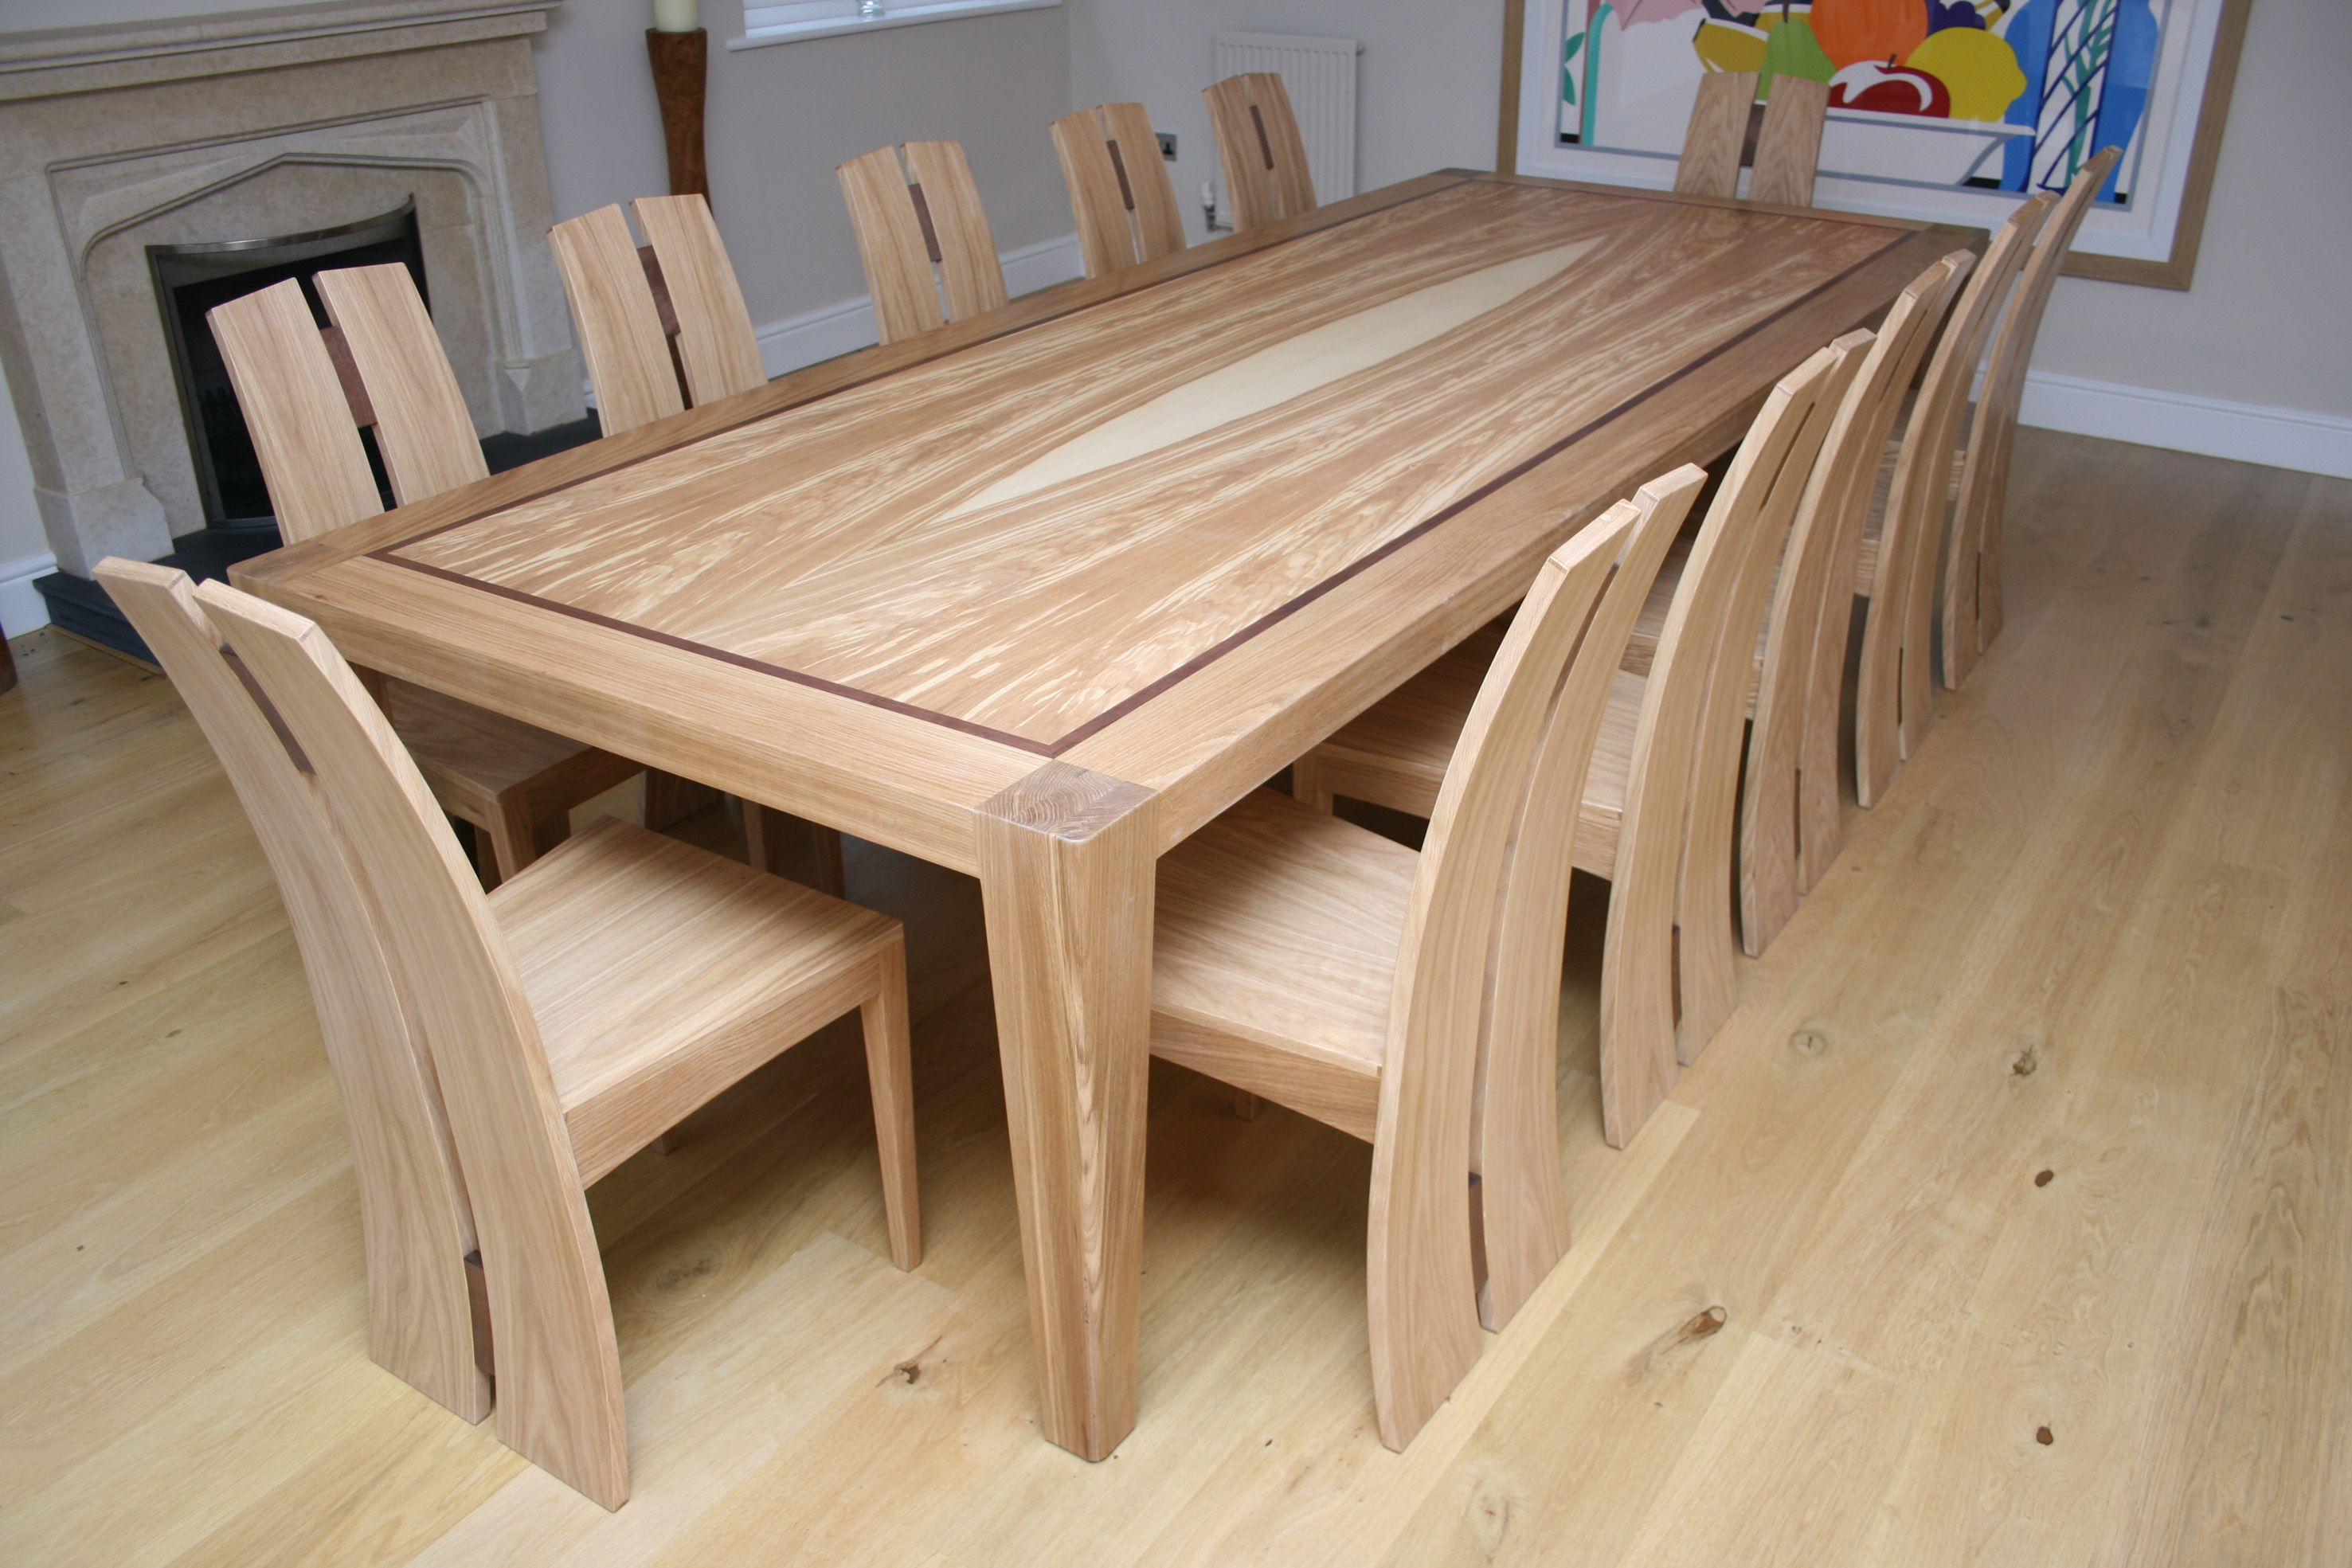 dining room table 12 seater | Breathtaking dining room table 12 seater | Wooden dining ...